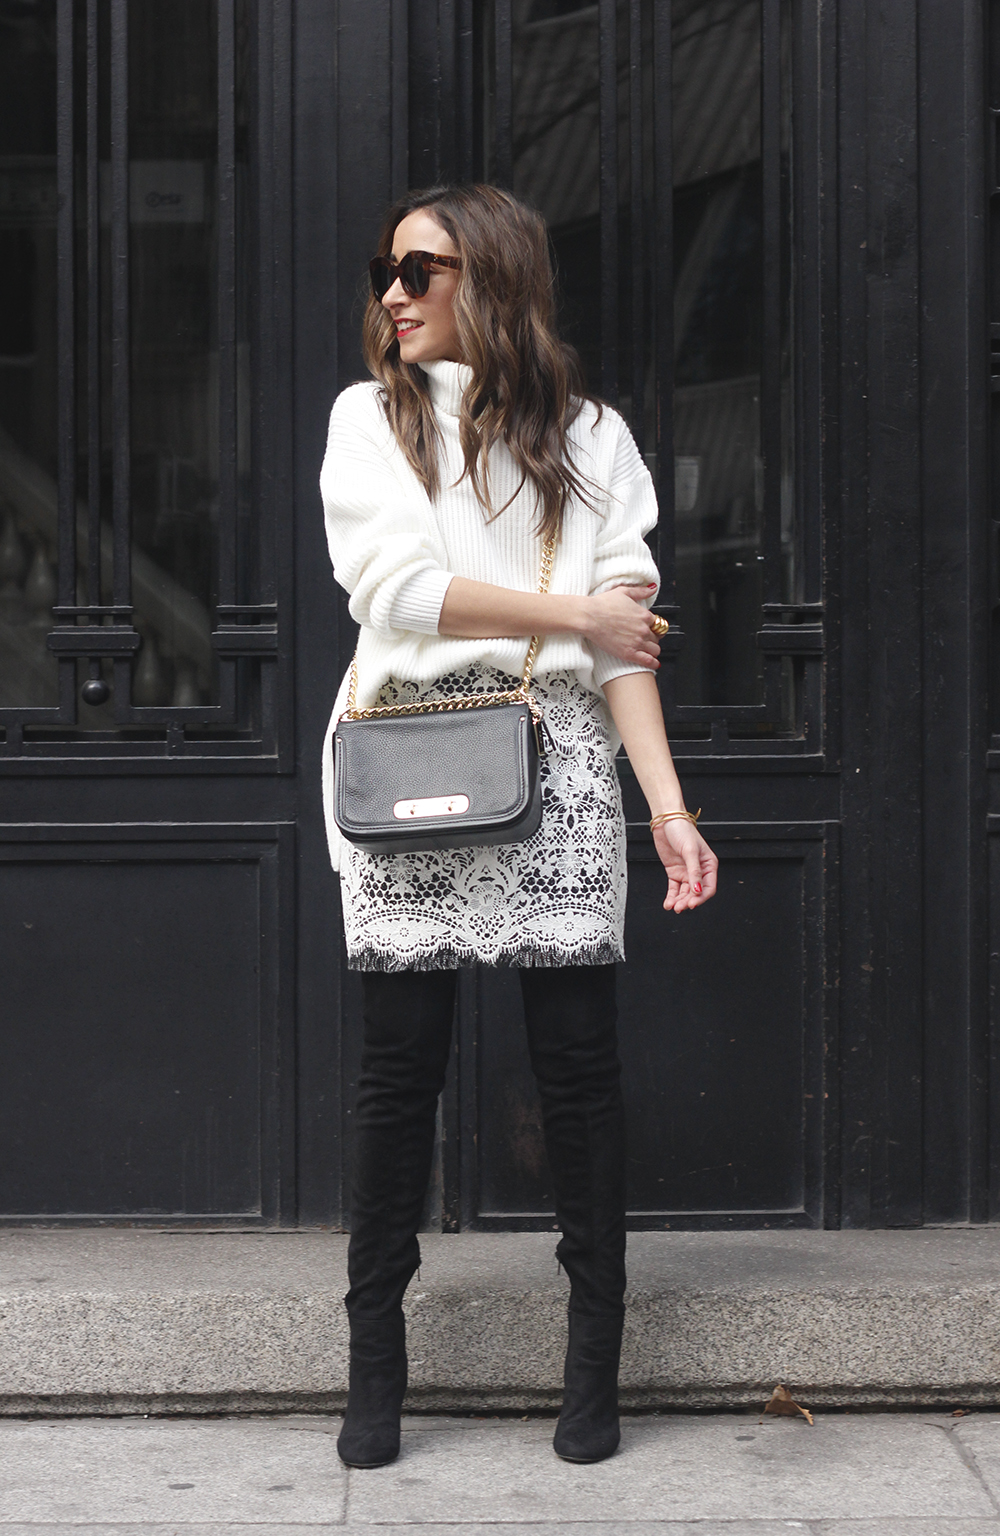 black and white lace skirt over the knee boots white turtleneck jersey outfit style winter02